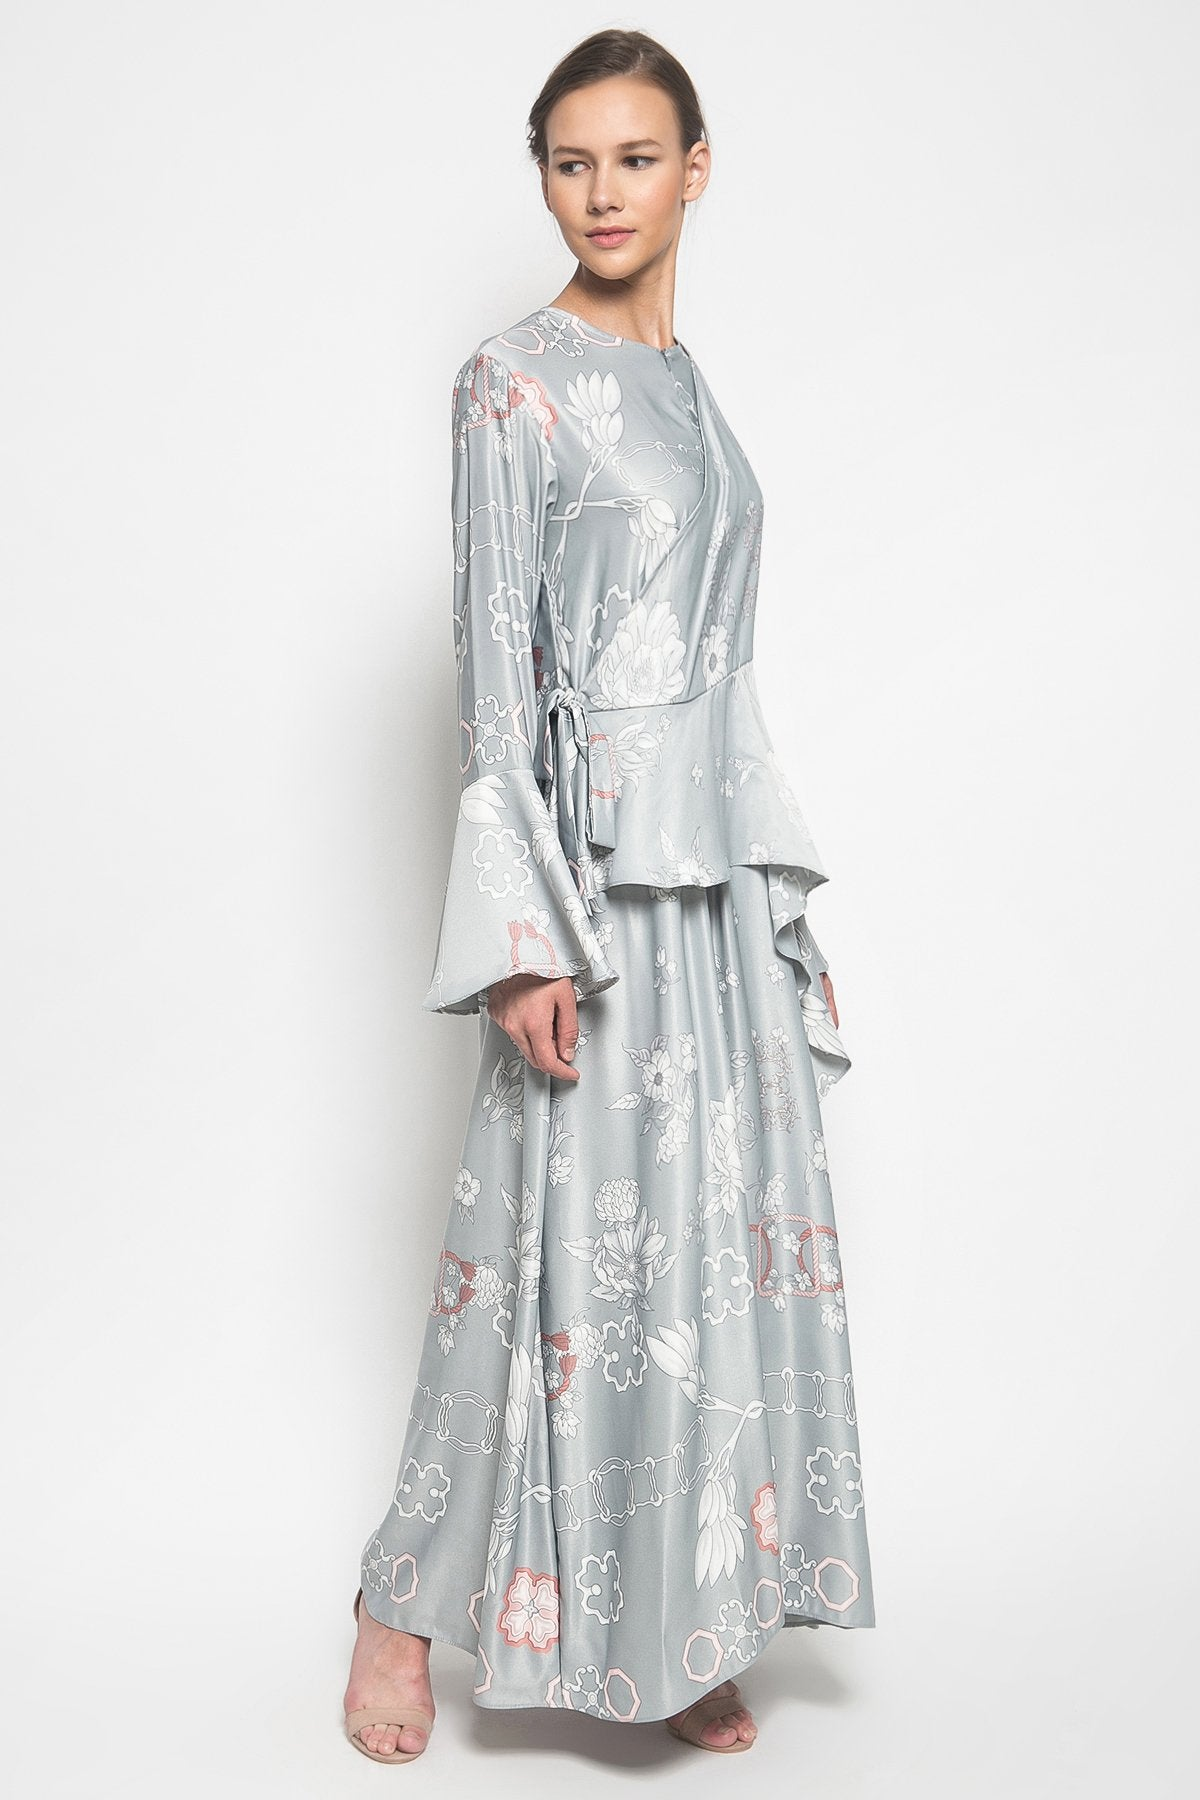 Fantasy Dress in Grey